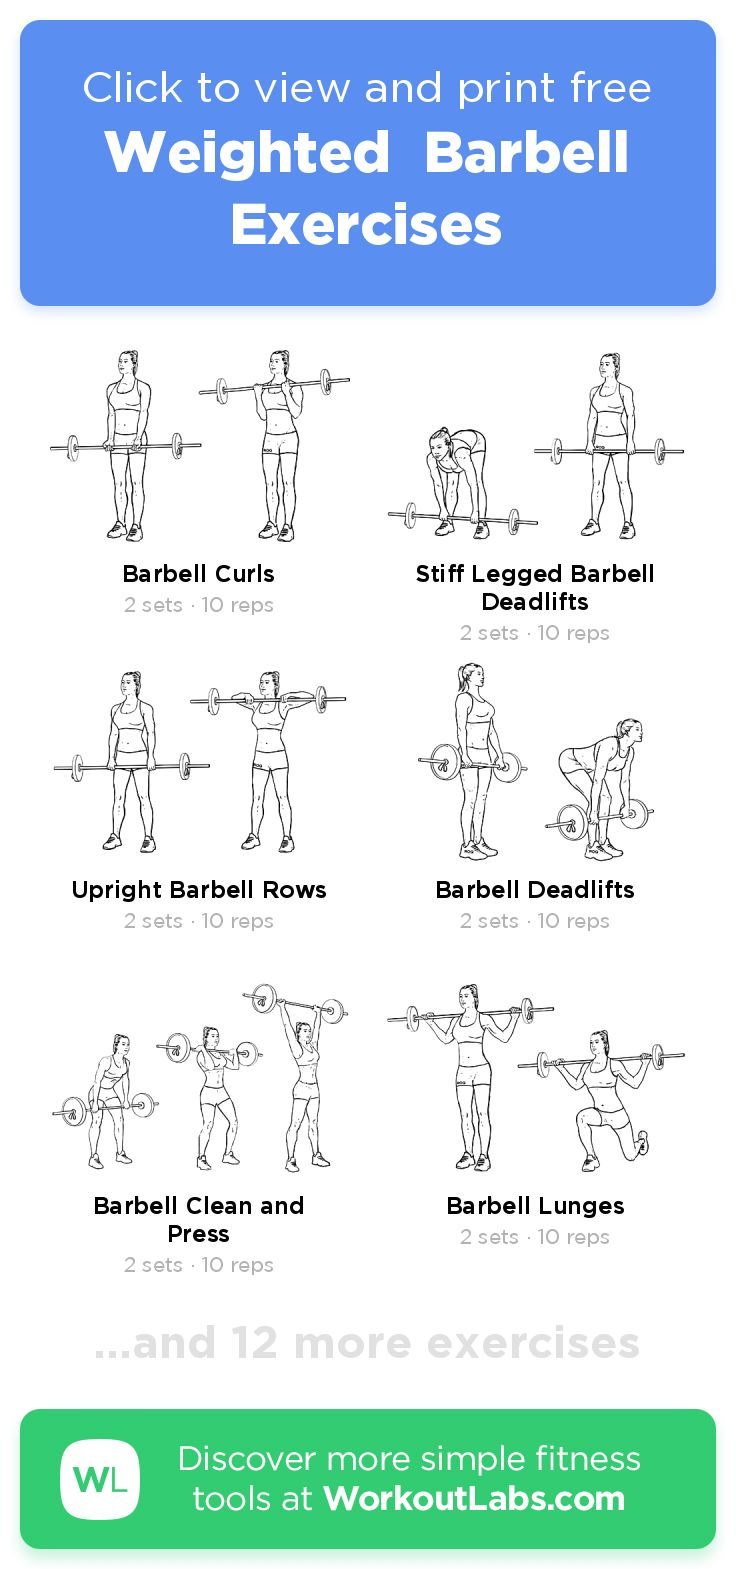 Weighted Barbell Exercises Workoutlabs Fit Barbell Workout Barbell Workout For Women Full Body Weight Workout